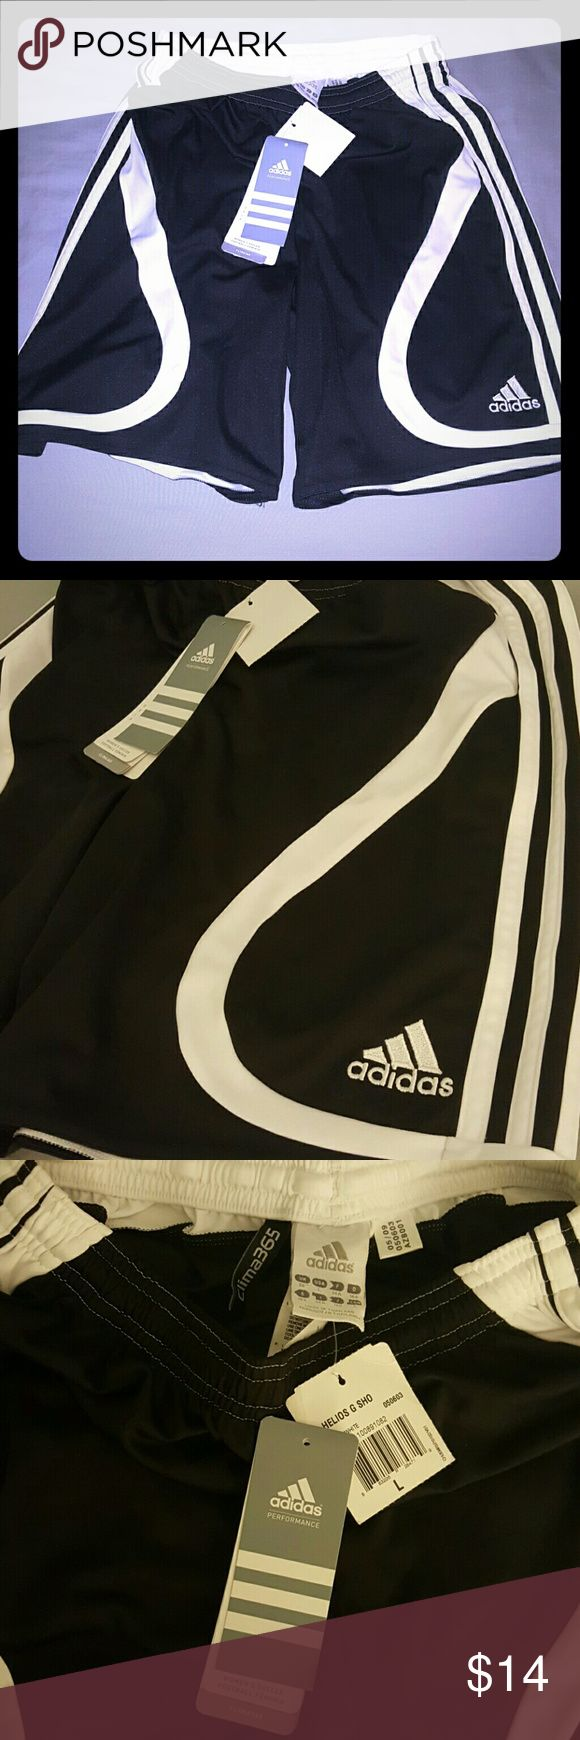 Adidas soccer shorts clima365 large black white Brand new adidas soccer shorts large black white clima365 tags attached. Great deal comfortable active shorts. Good for working out or just stylish. Sold as is please check out all our listings thank you for looking adidas Shorts